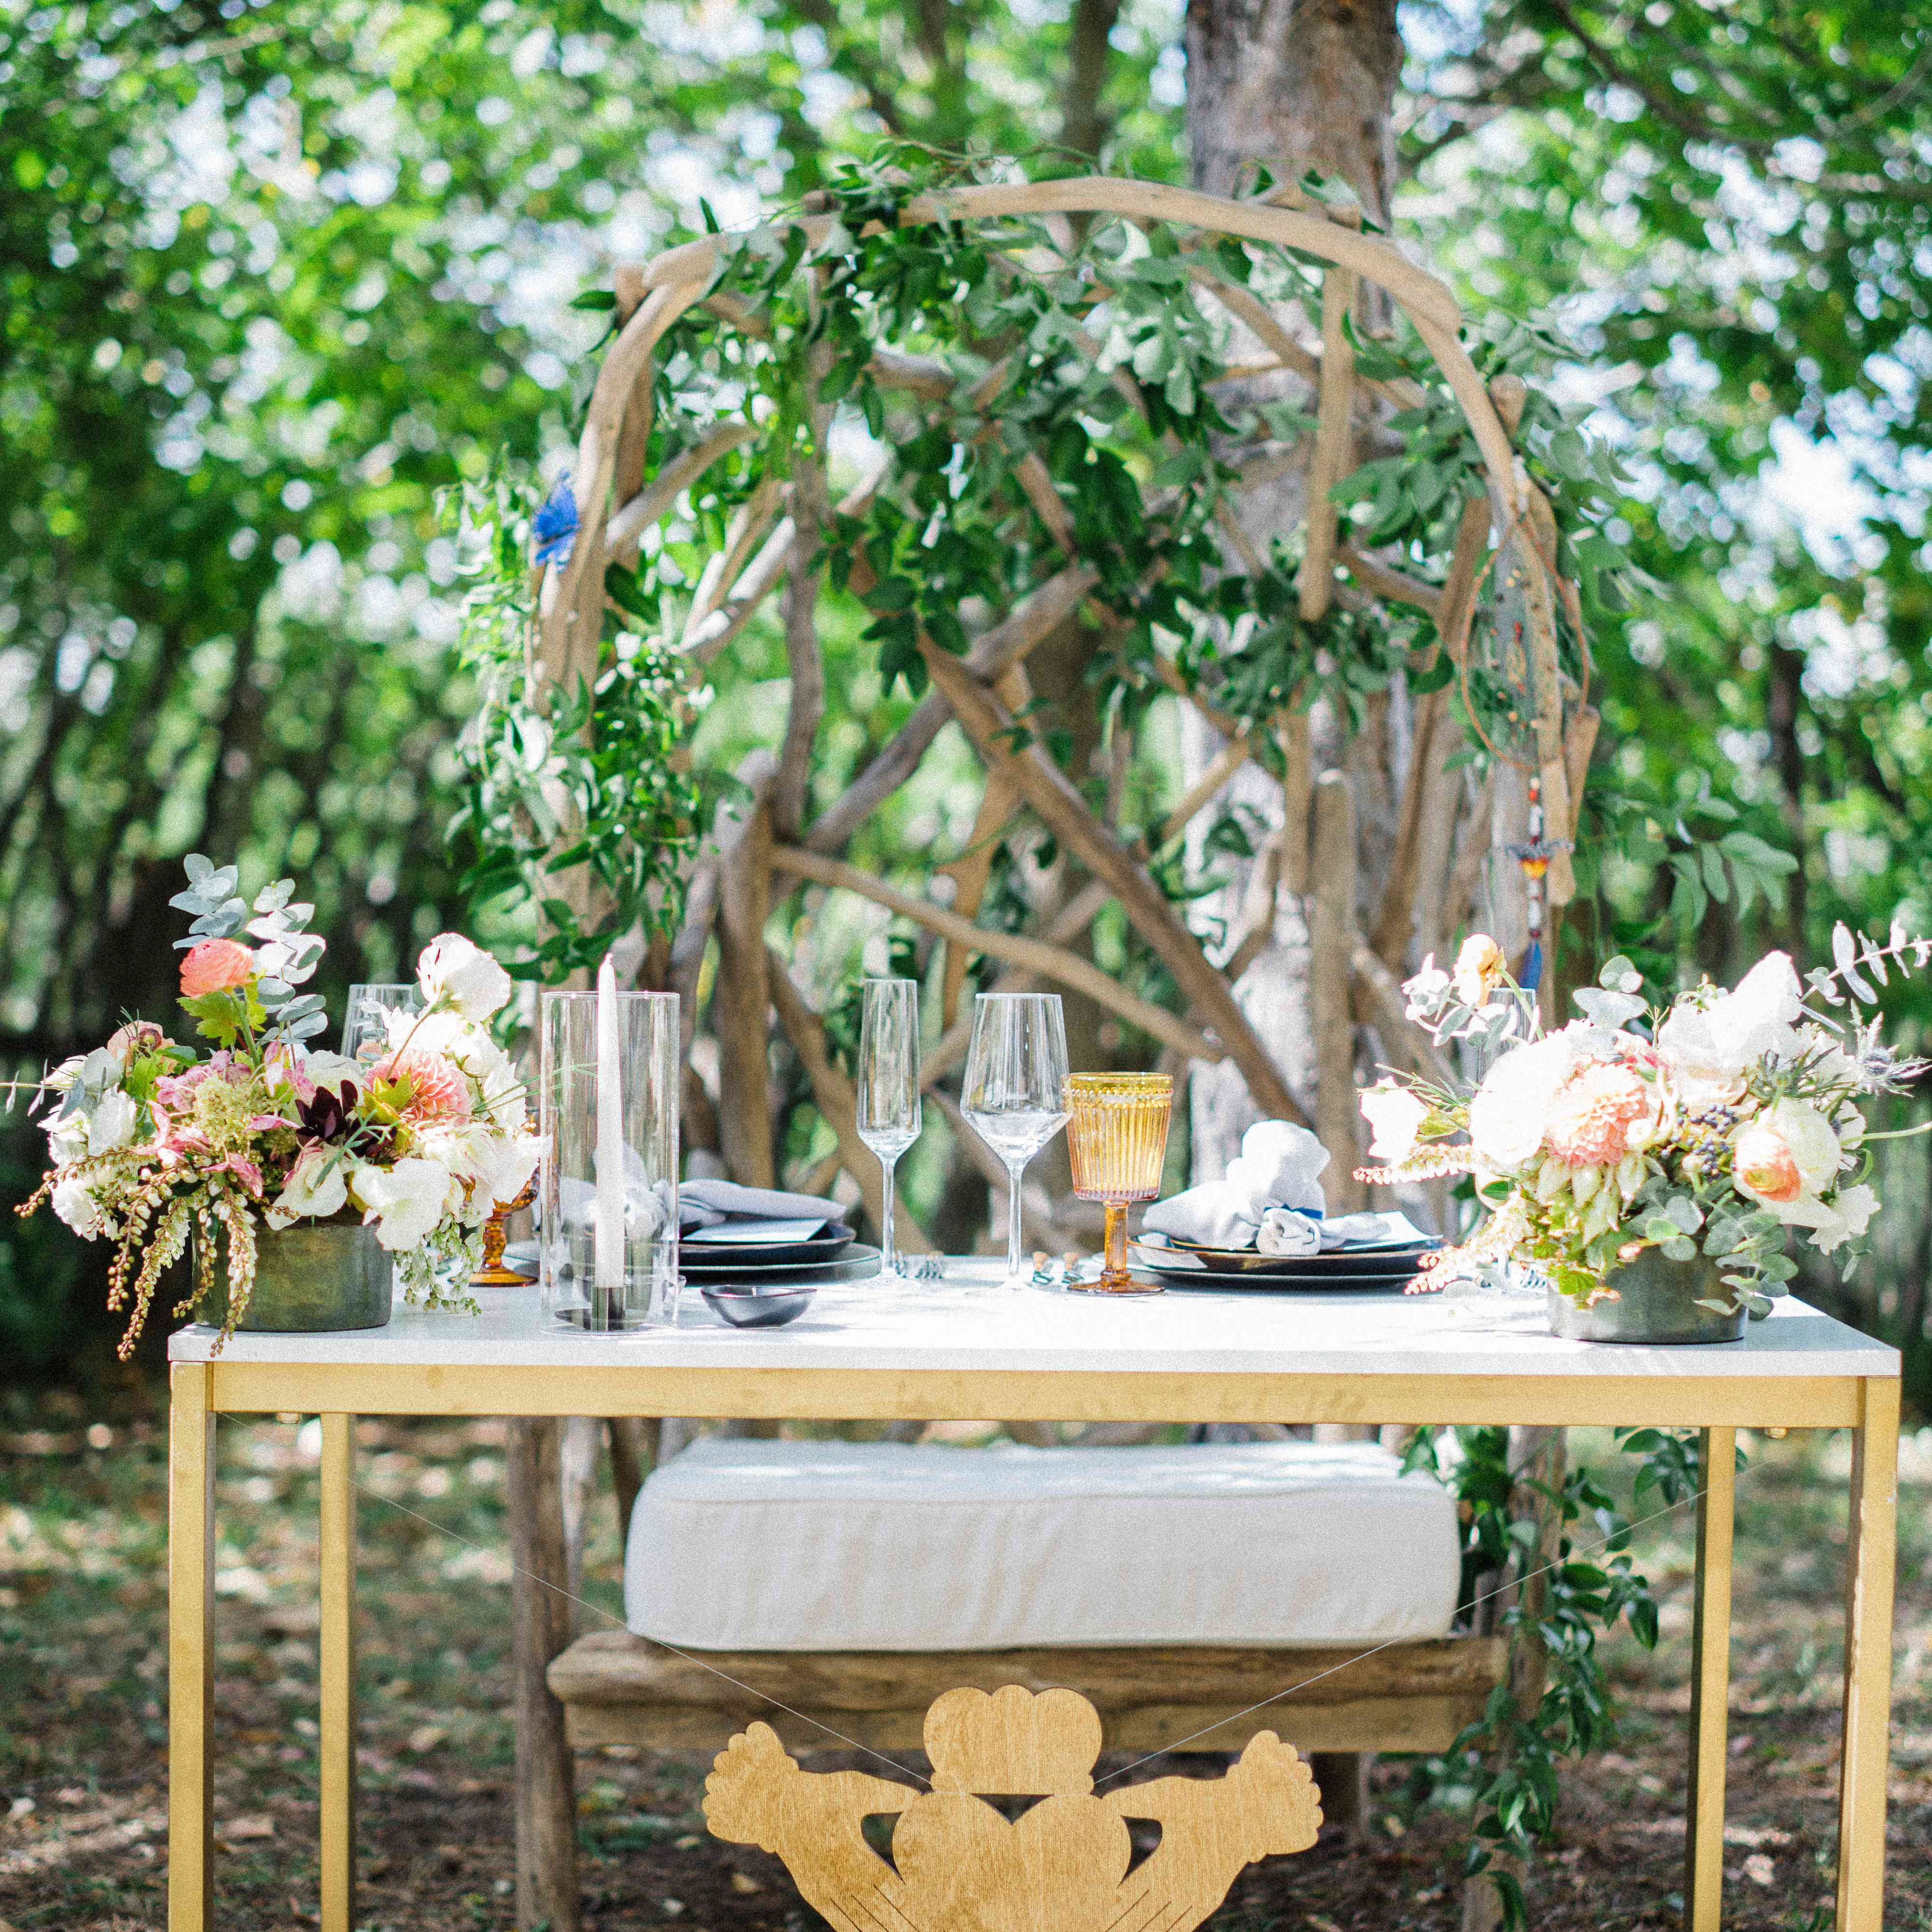 Sweetheart table with loveseat of woven branches